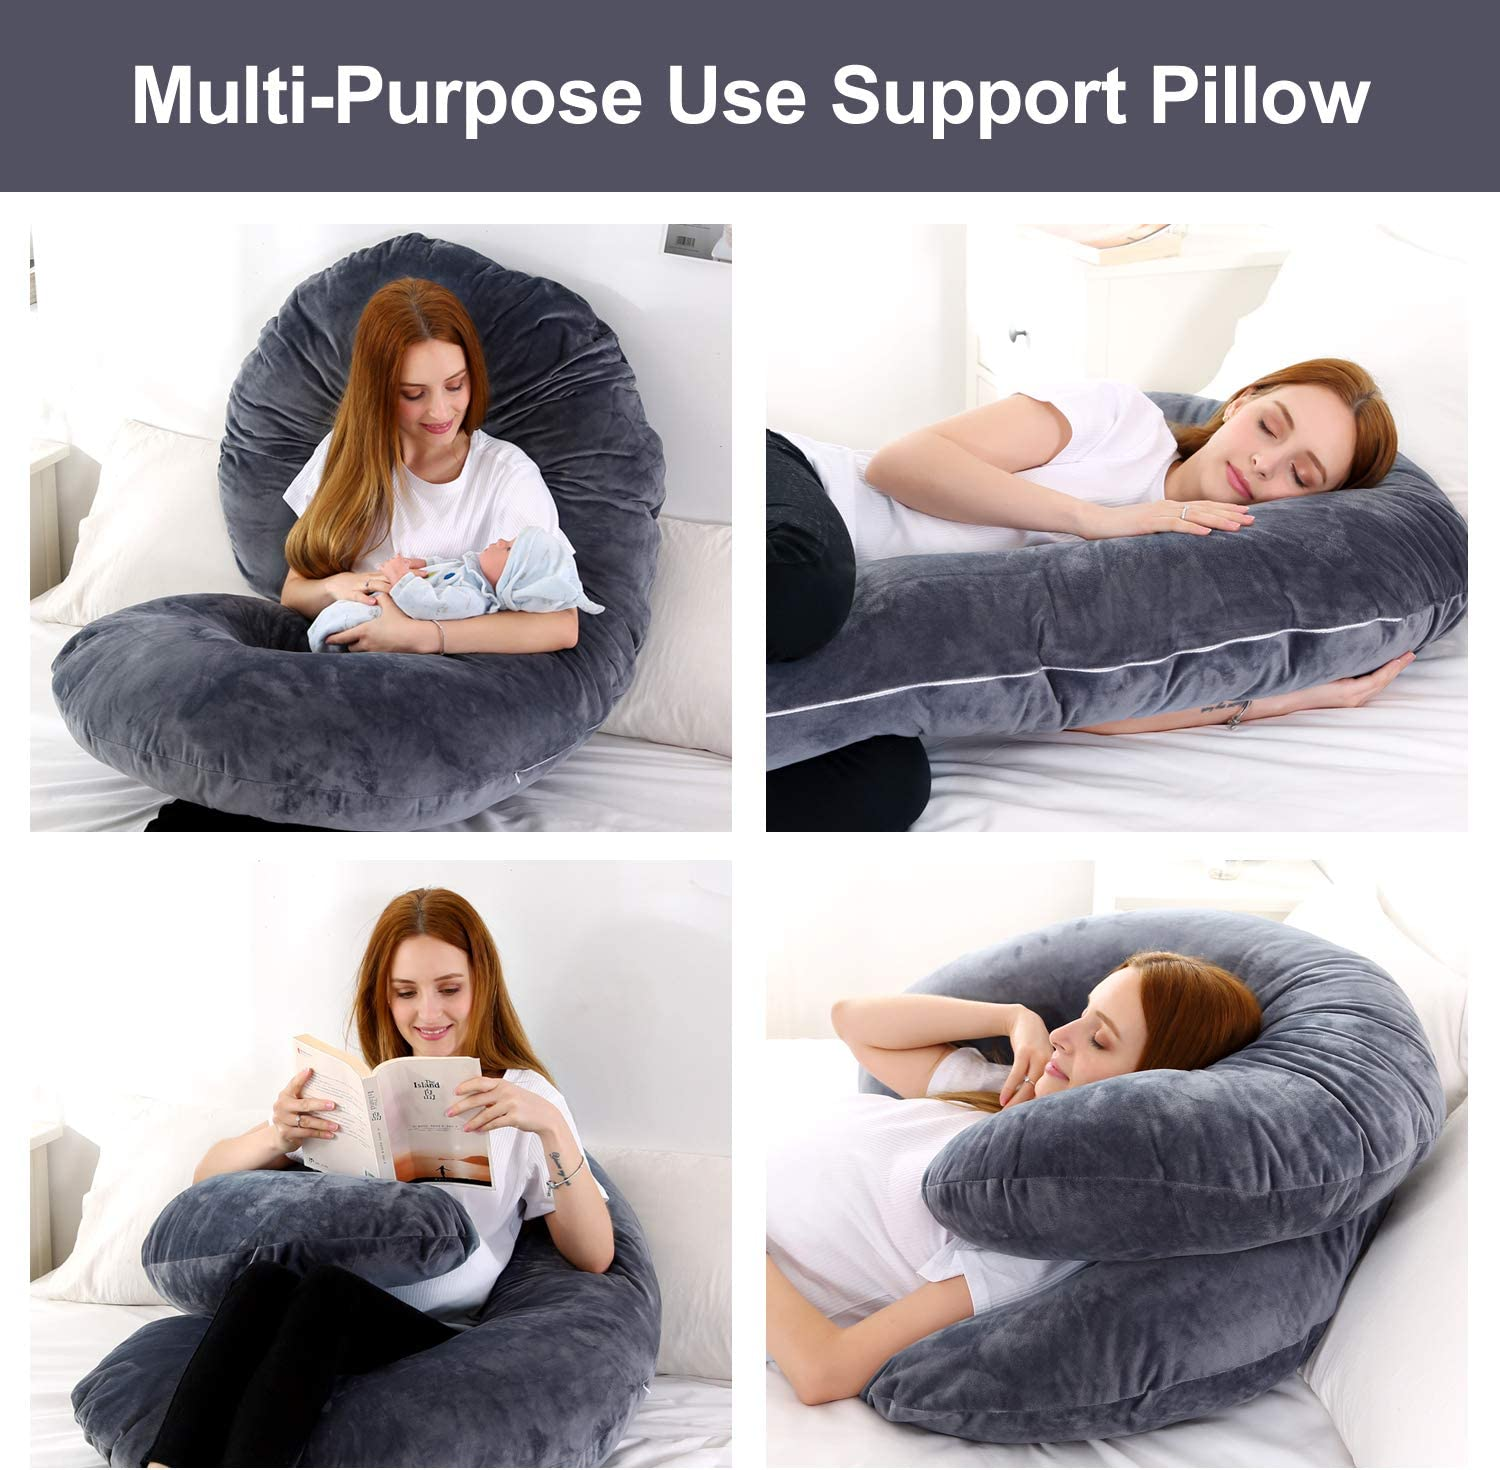 Dream night Big Size Pregnancy Pillow with Grey Jersey Cover Grey, 57 x 30inches C Shaped Full Body Pillow Comfort C Shaped Zootzi Pillow with Removable Washable Velvet Cover